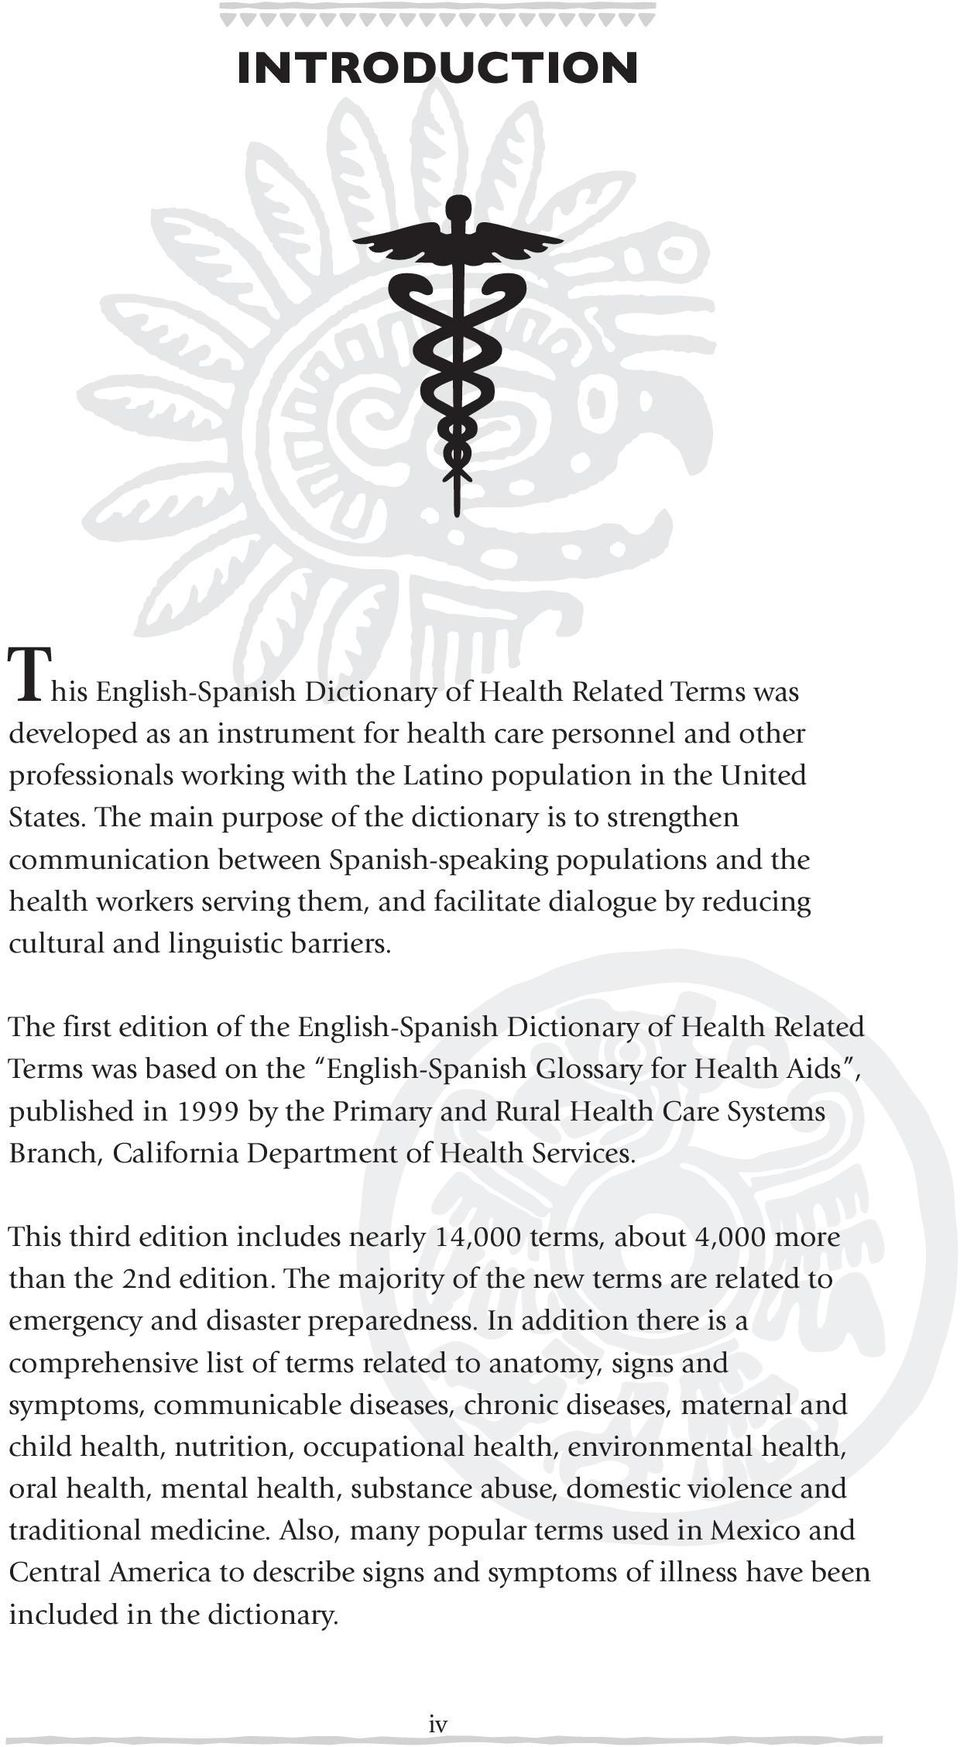 The main purpose of the dictionary is to strengthen communication between Spanish-speaking populations and the health workers serving them, and facilitate dialogue by reducing cultural and linguistic